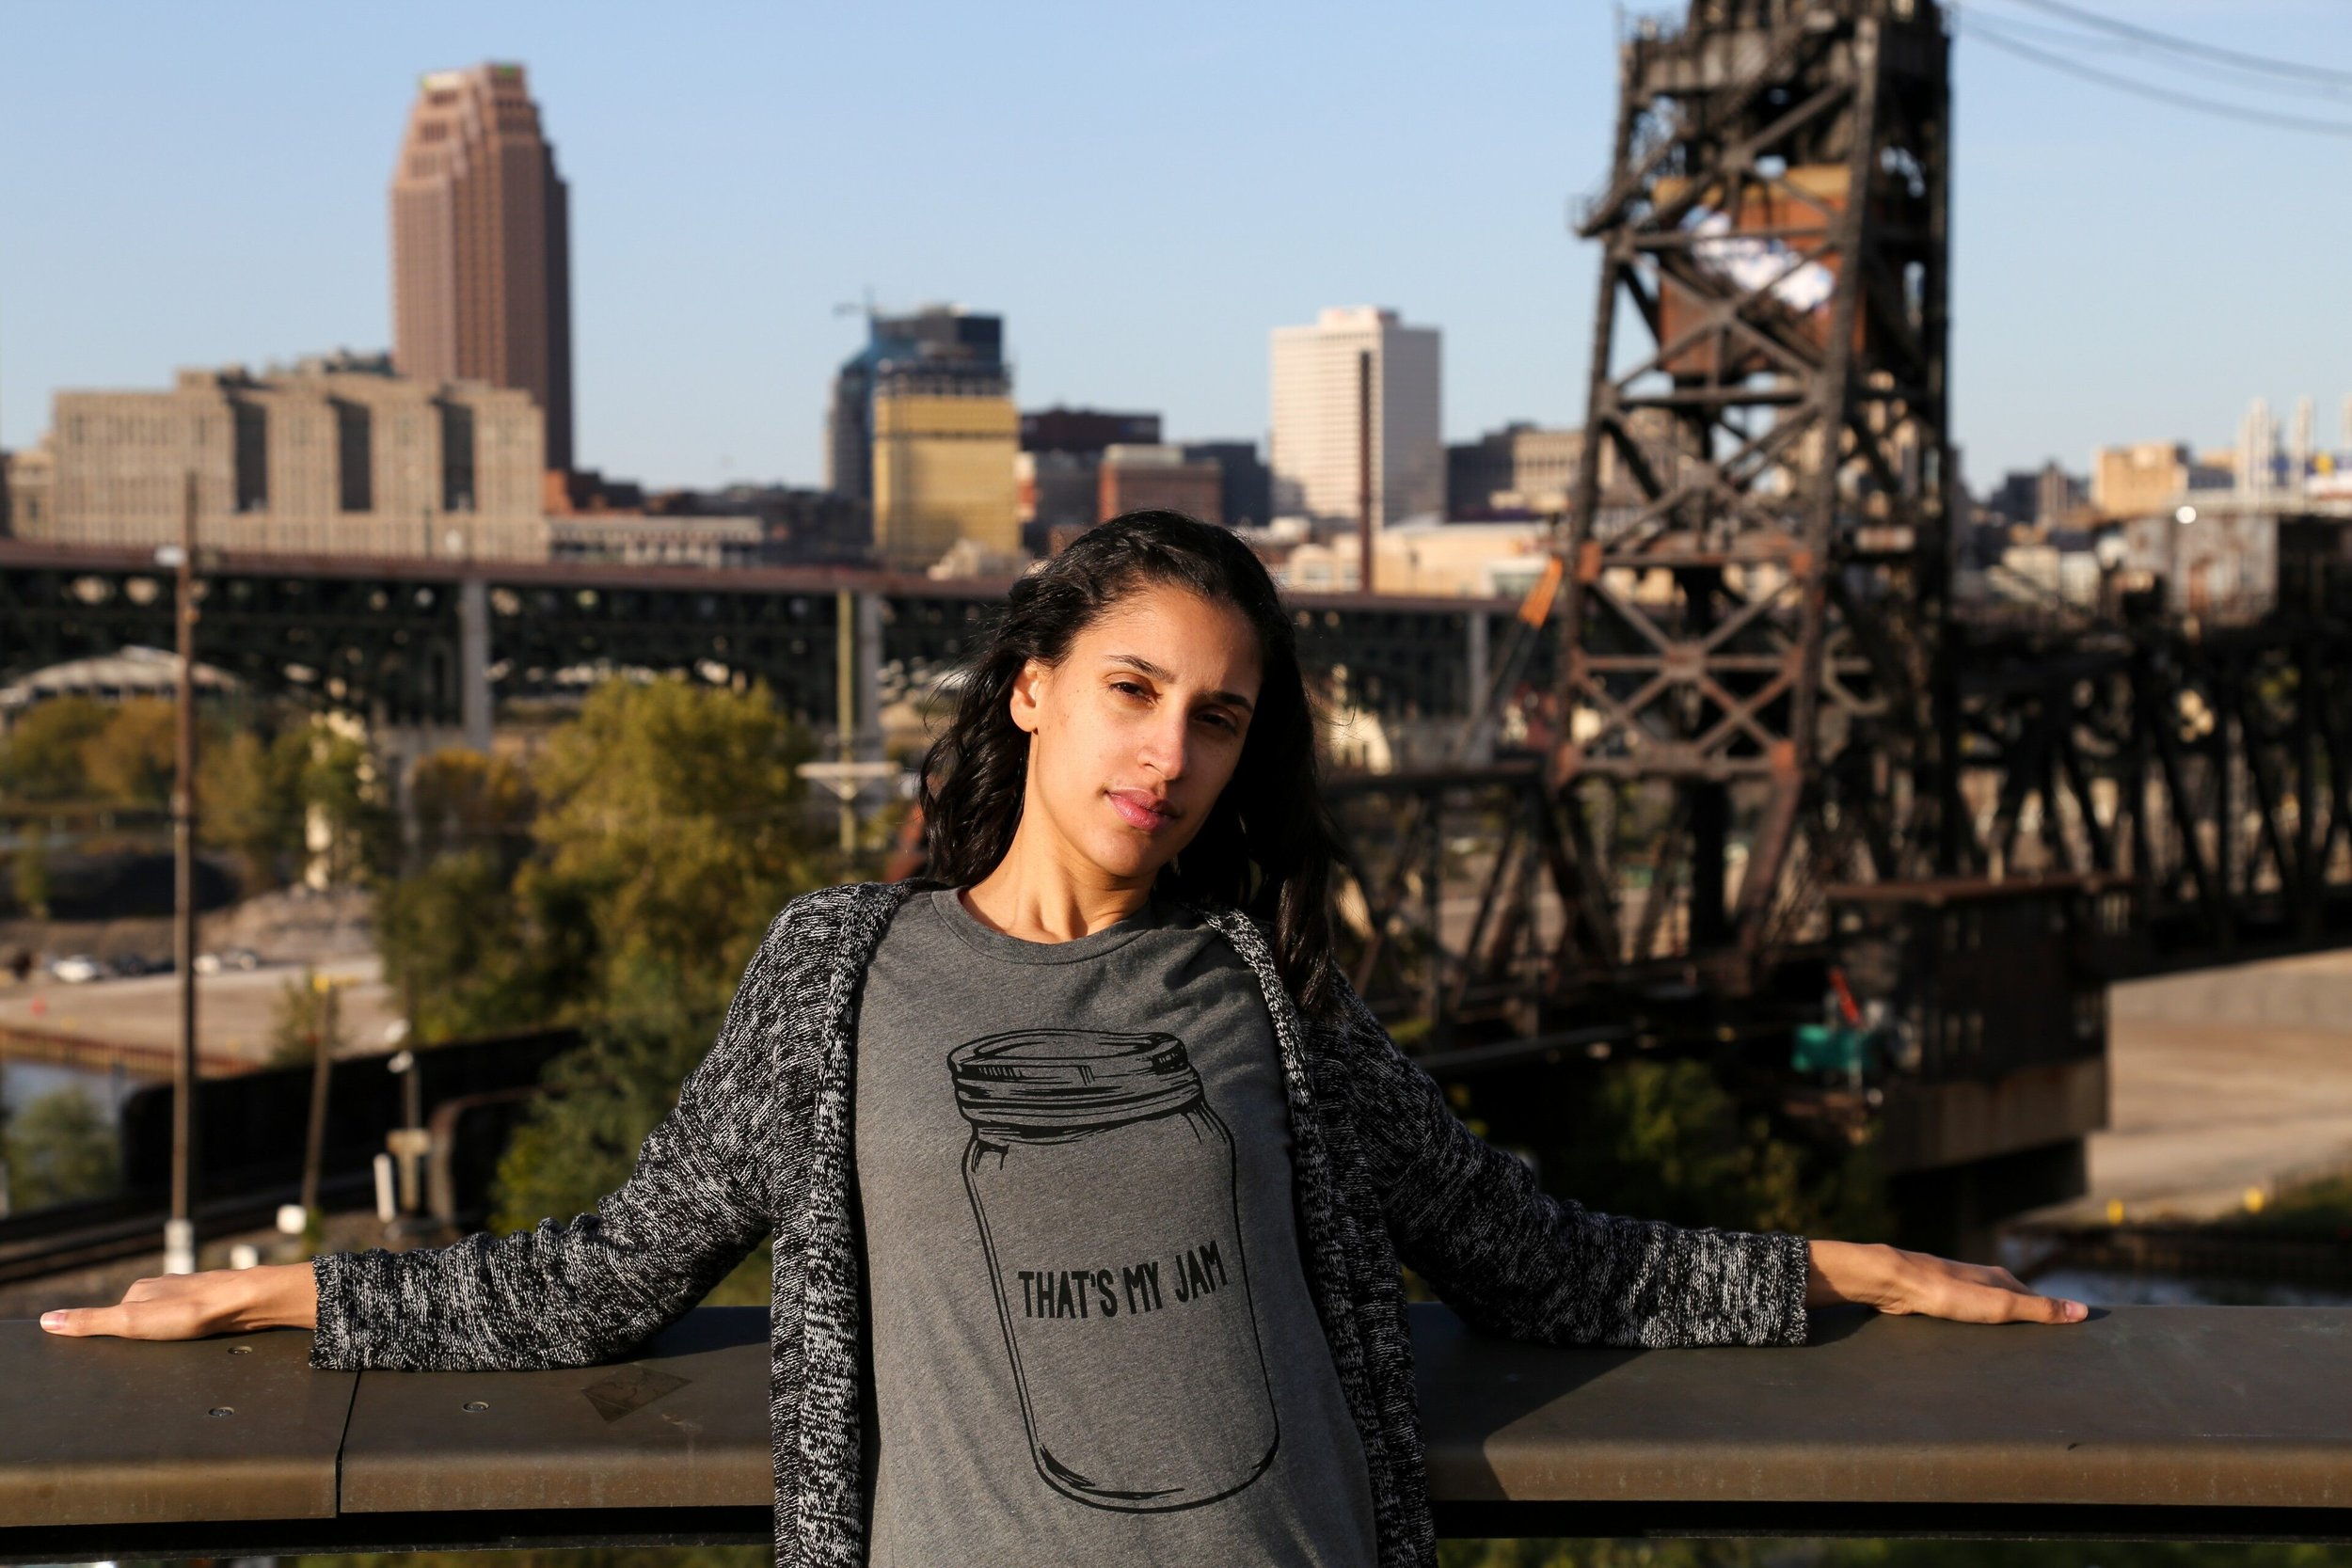 Photo by Bivens Photography. Shirt printed at    Fresh Lab Cleveland   .